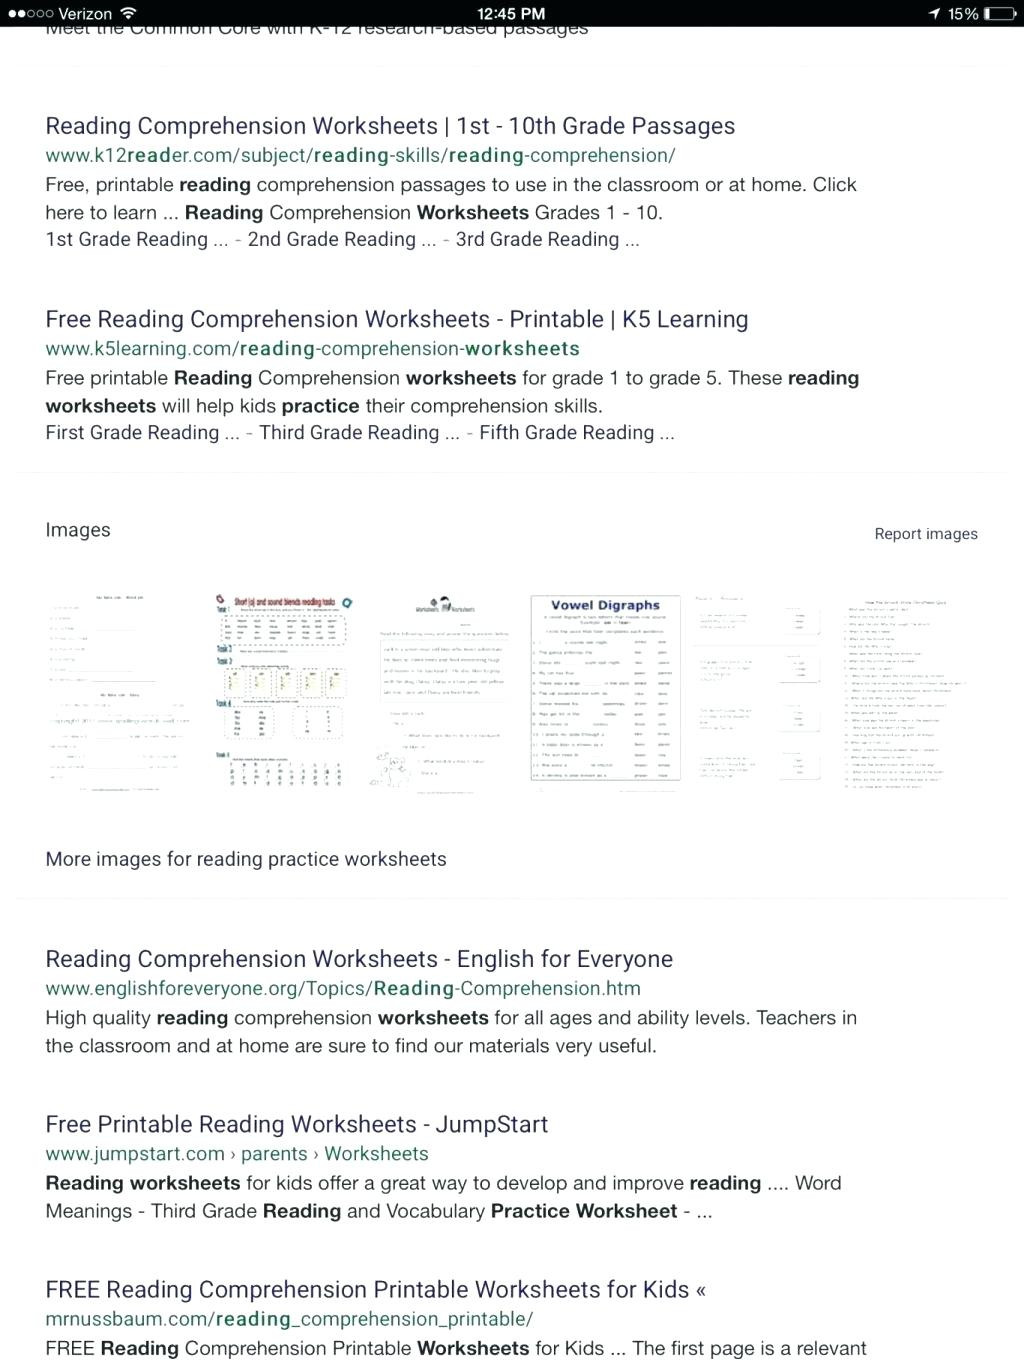 Subject Worksheets 3rd Grade Worksheet 1stade Worksheet Reading to Learning Third